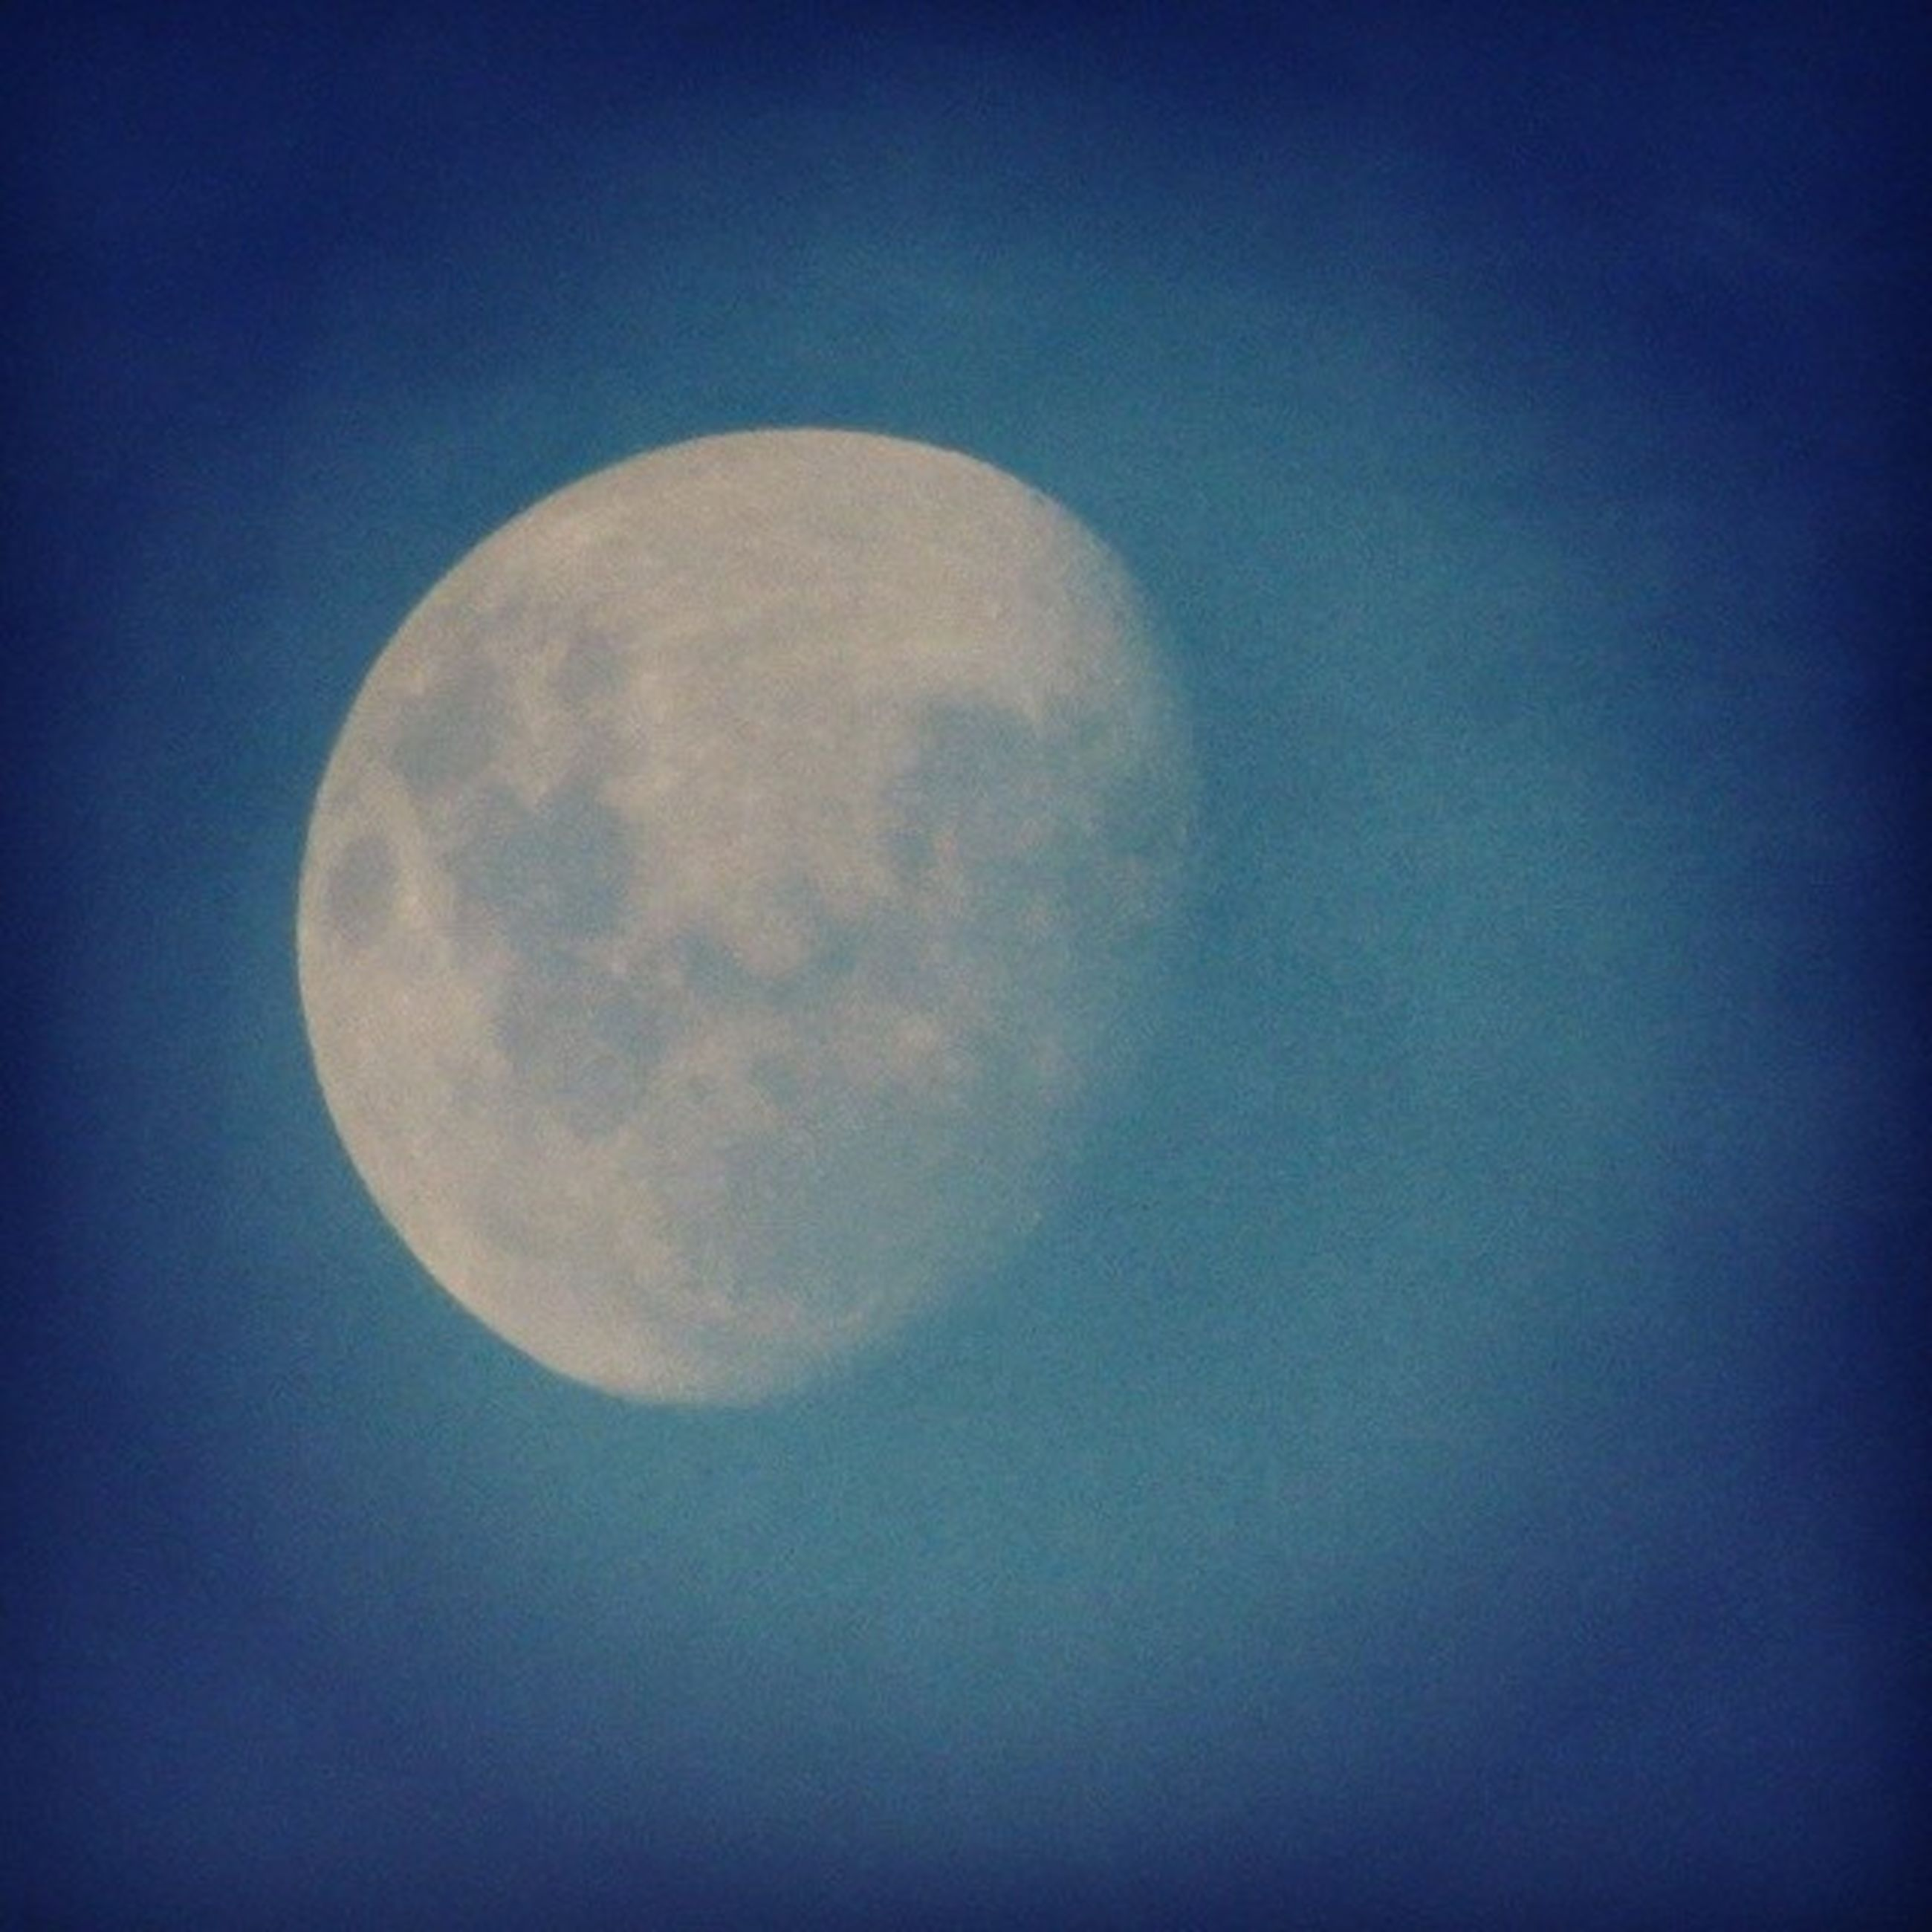 moon, astronomy, copy space, low angle view, full moon, planetary moon, sphere, circle, moon surface, discovery, night, beauty in nature, space exploration, blue, sky, tranquility, nature, scenics, tranquil scene, clear sky